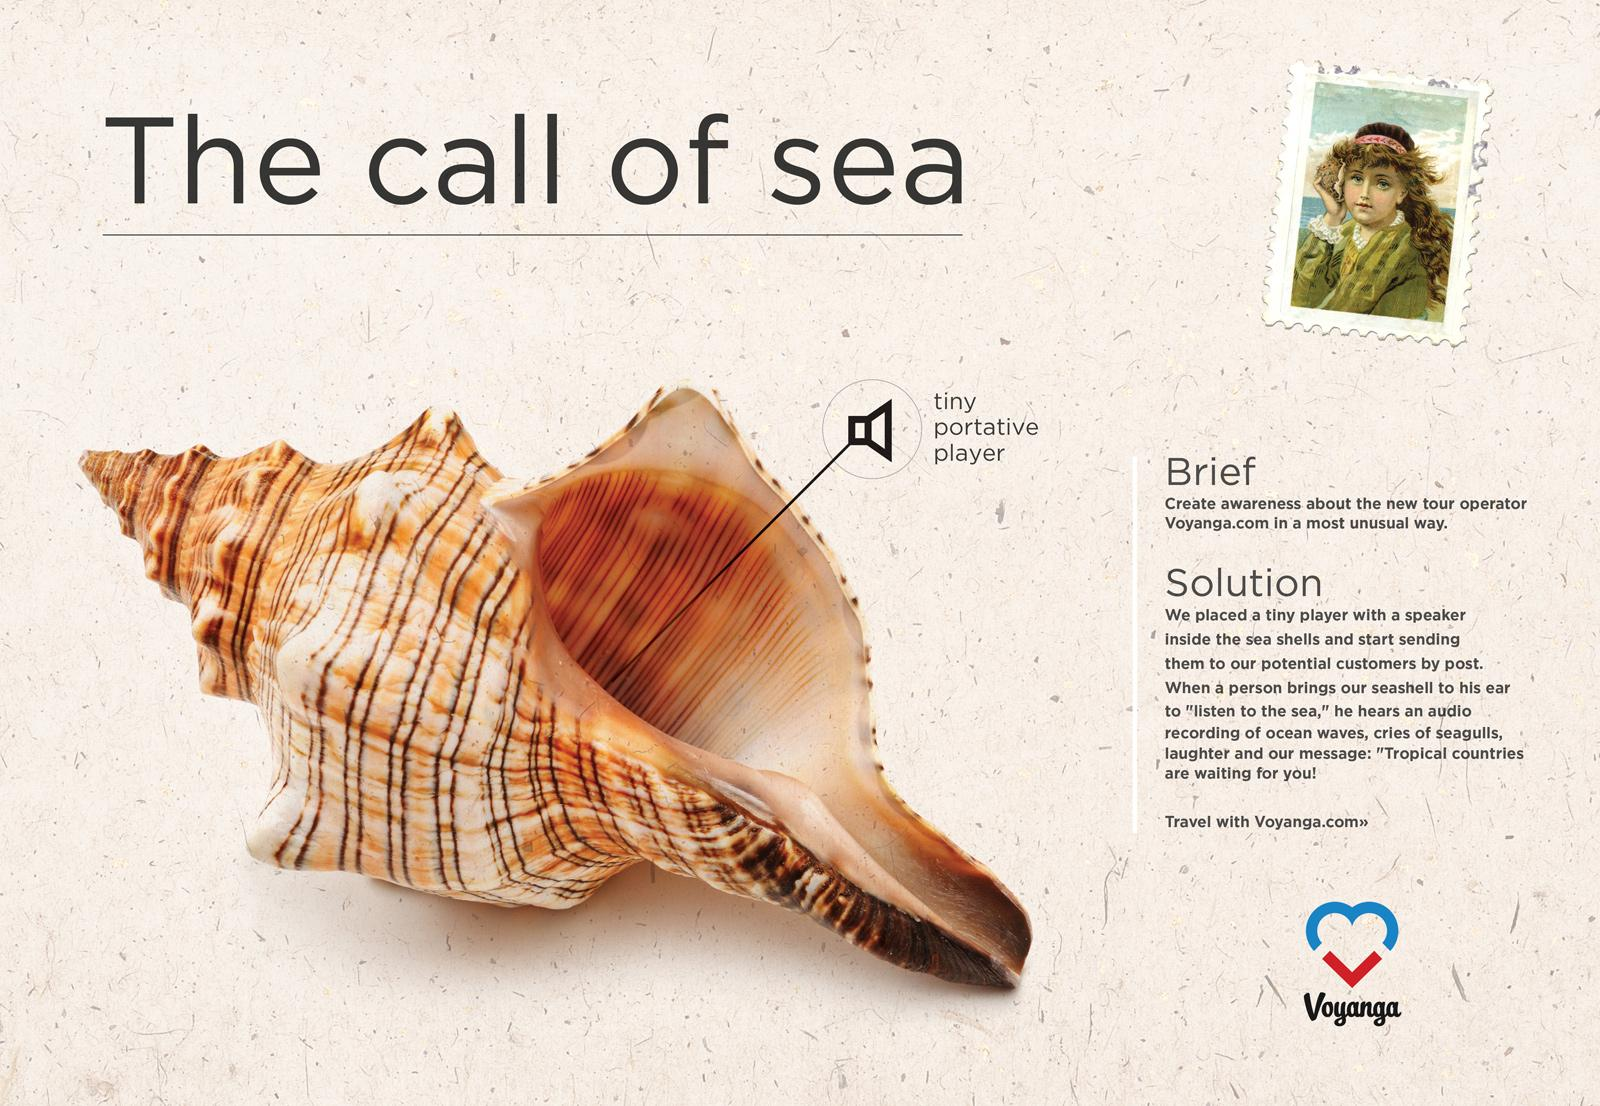 Voyanga Direct Ad -  The call of sea